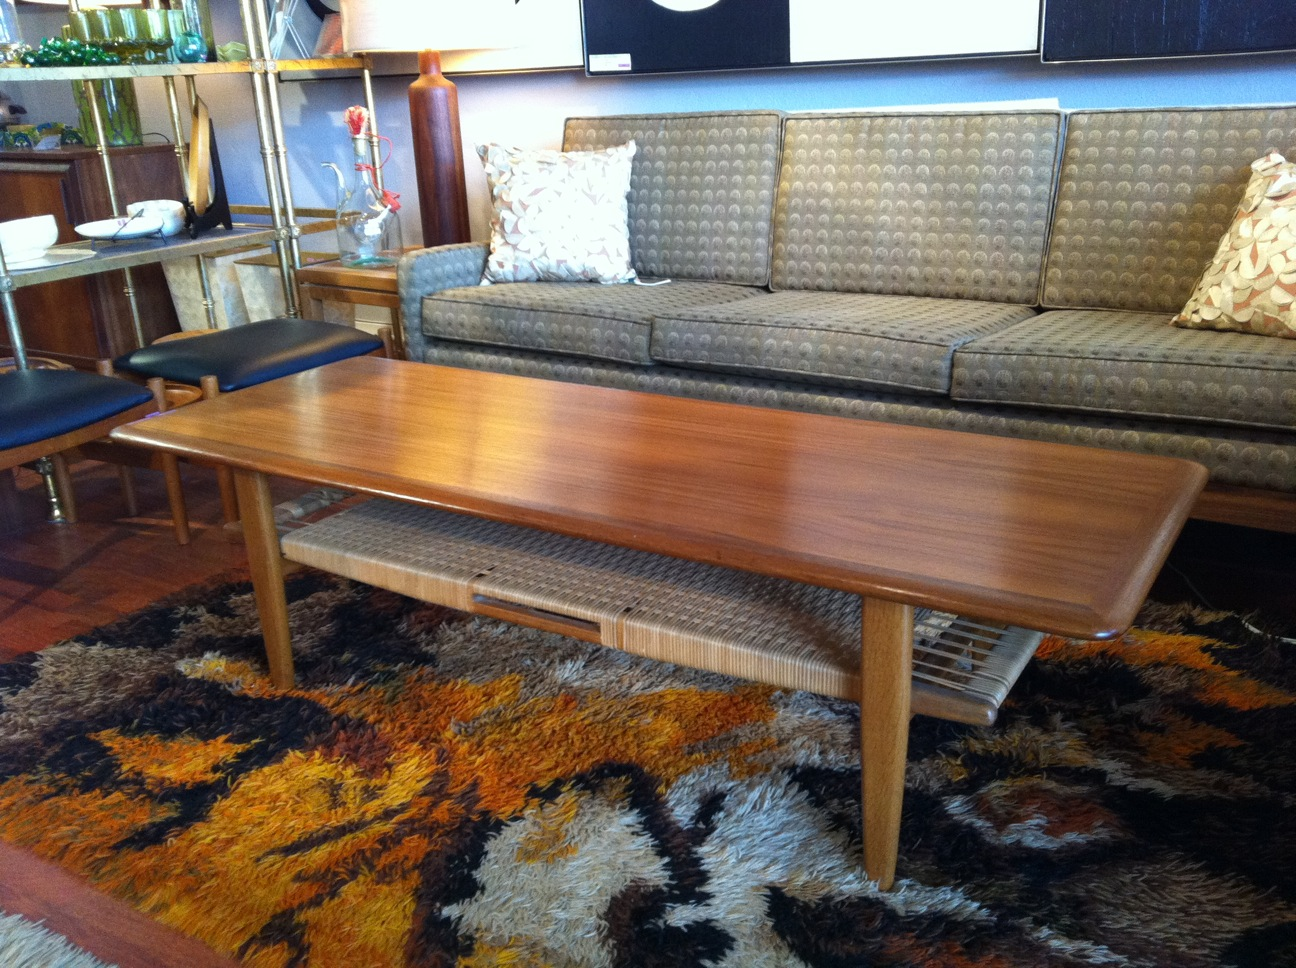 Gallery sold tables photo 153 for Coffee tables 16 inches high